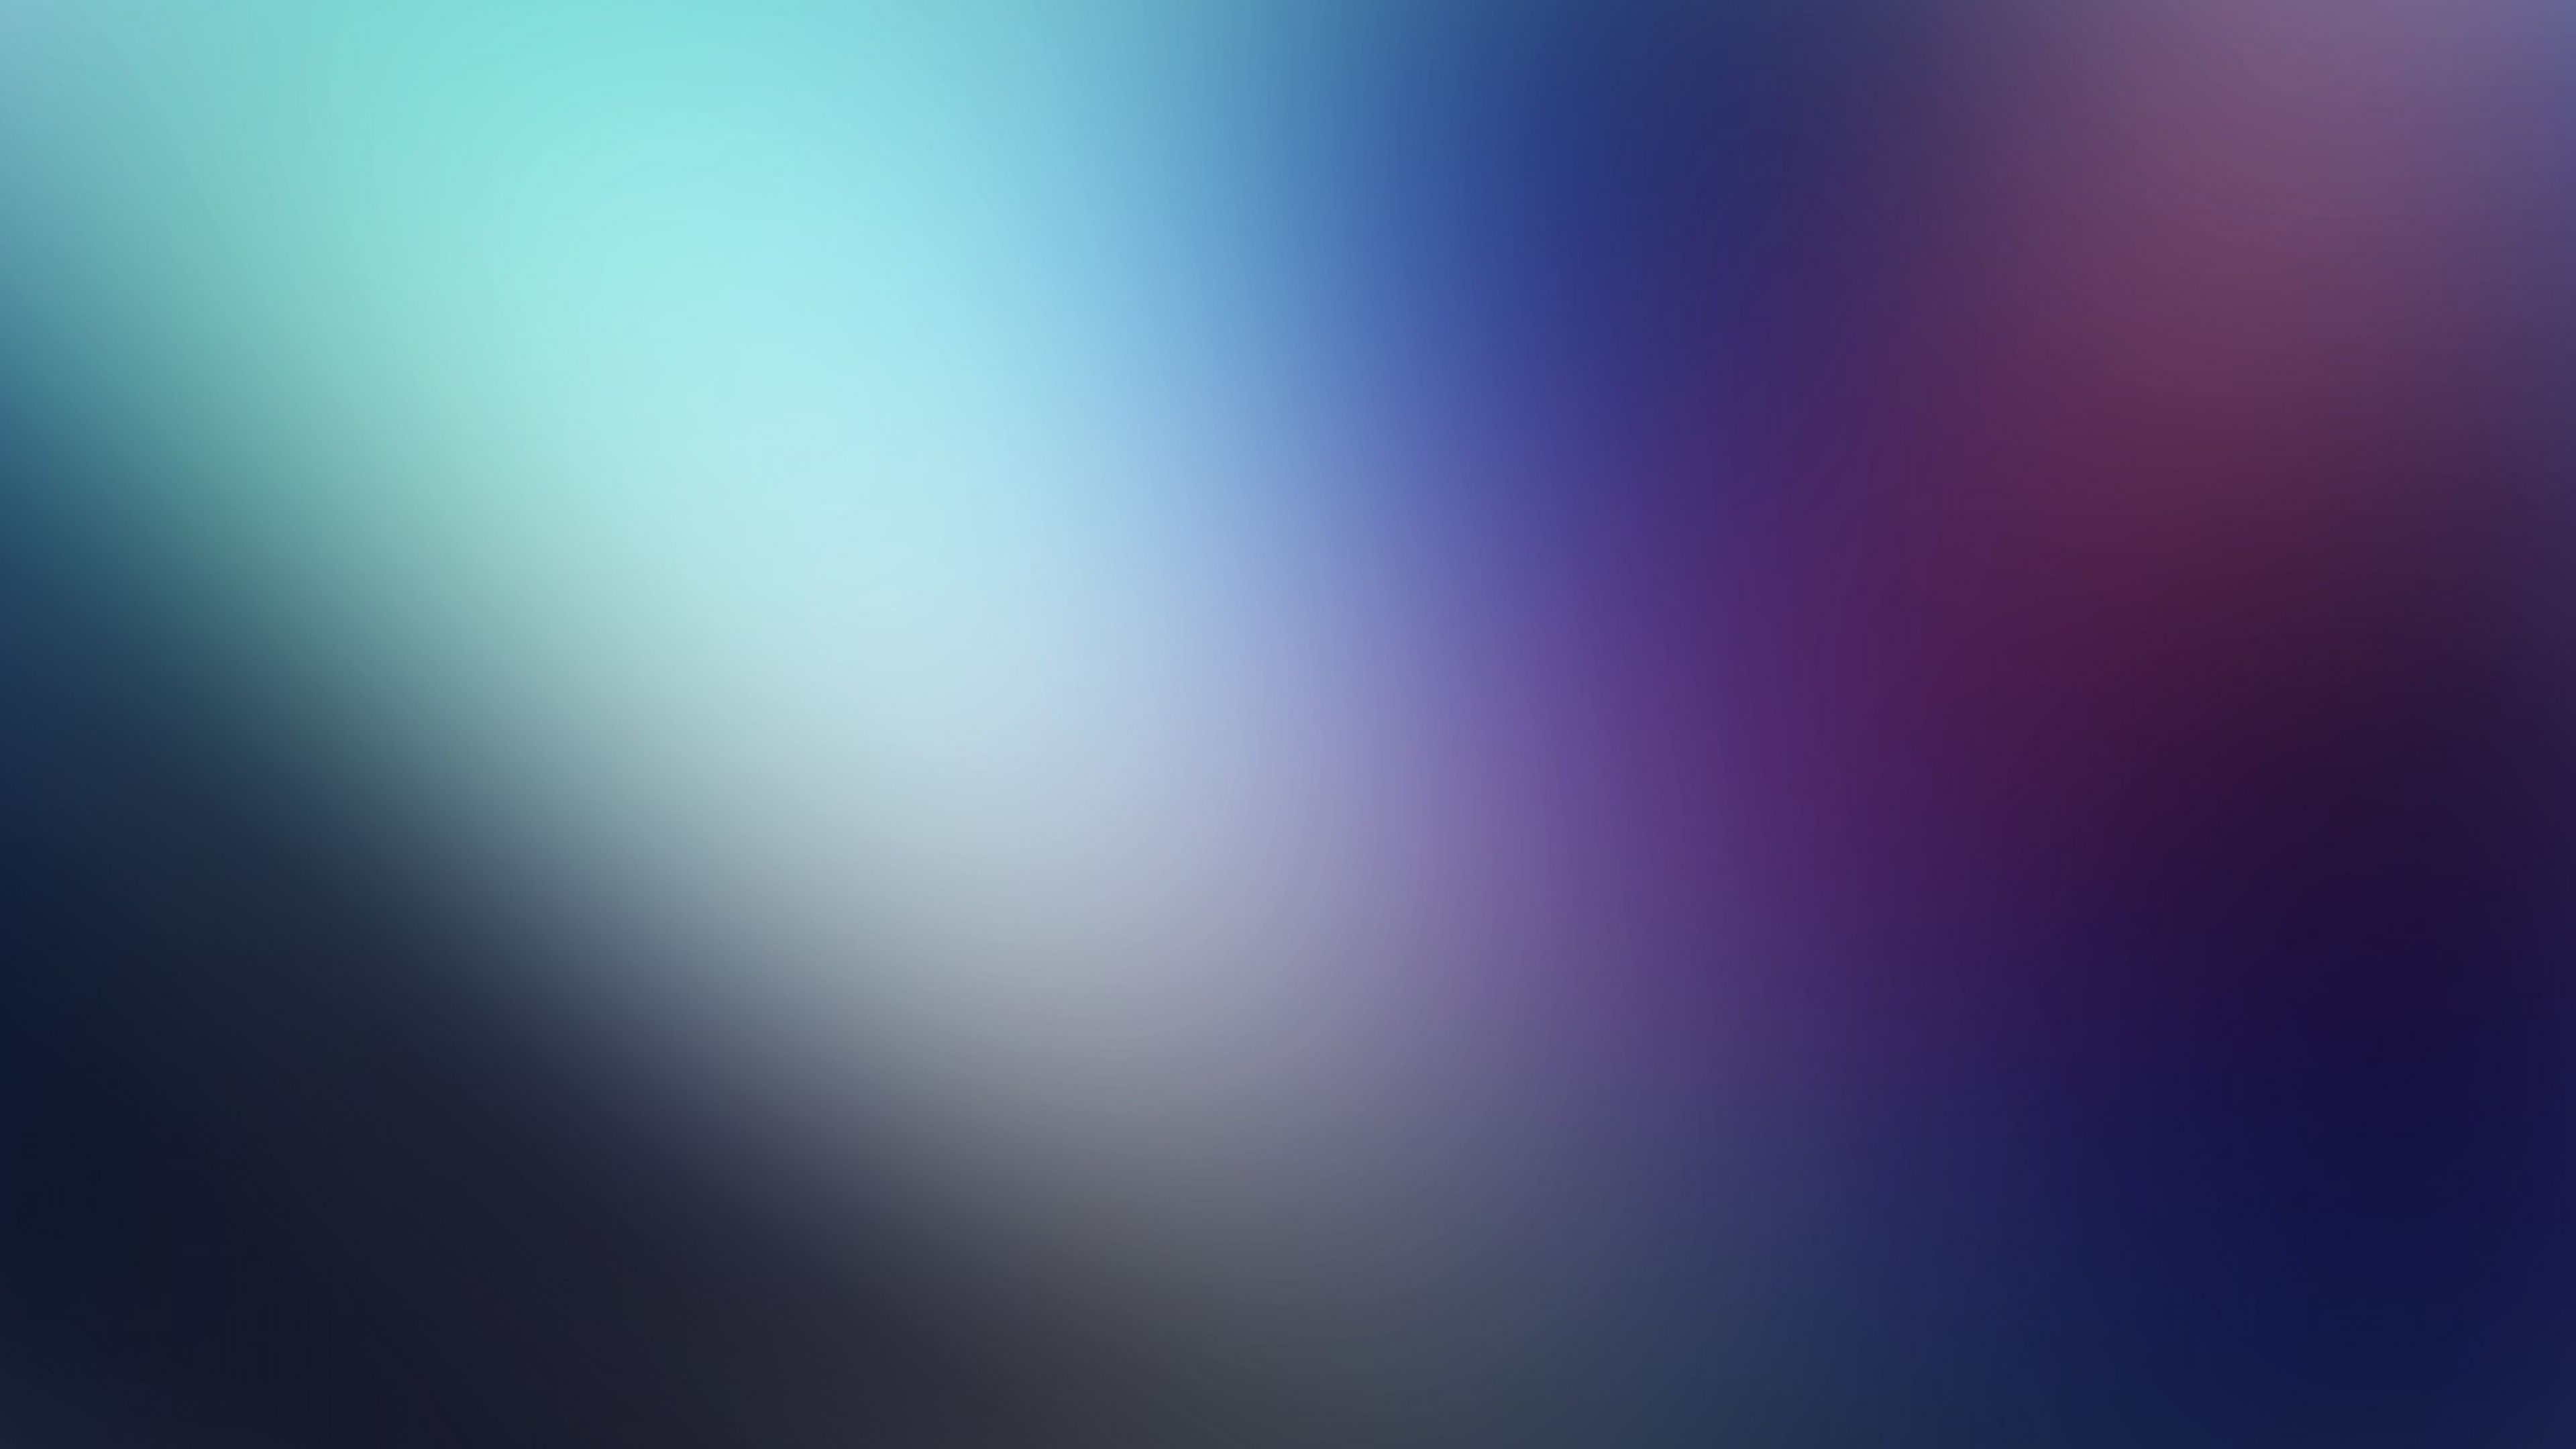 Uhd Abstract Wallpapers Top Free Uhd Abstract Backgrounds